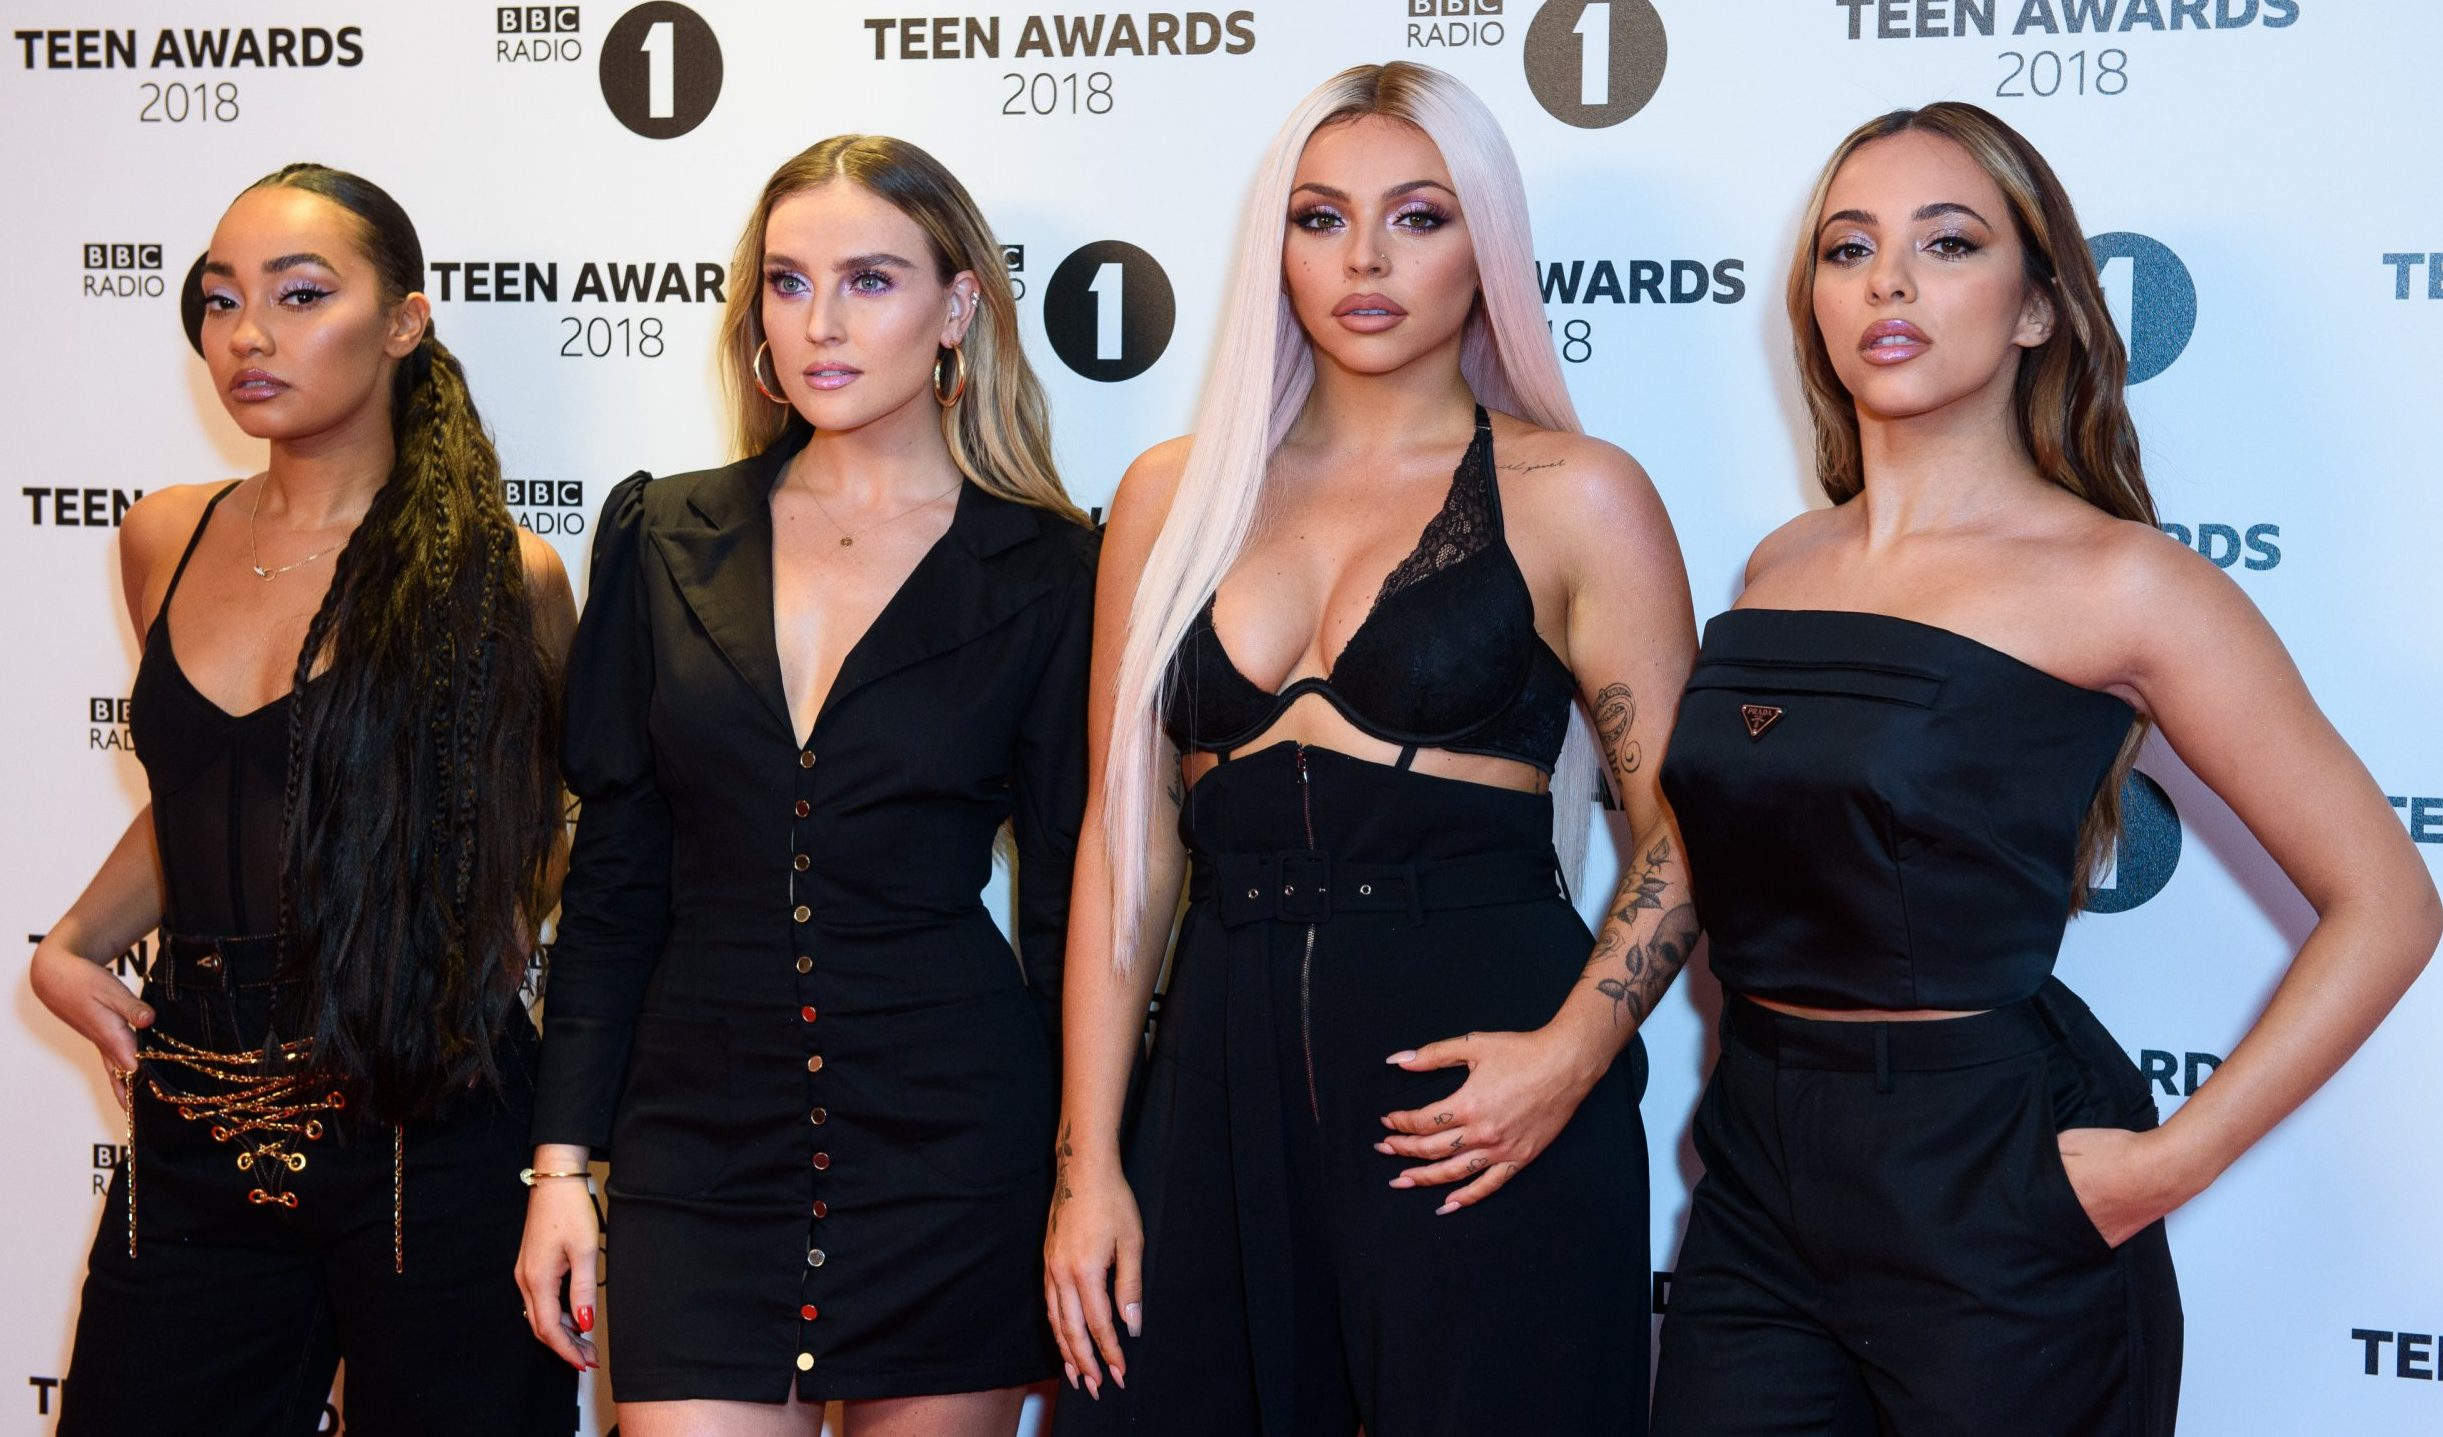 LONDON, ENGLAND - OCTOBER 21: Little Mix arrive the BBC Radio 1 Teen Awards at SSE Arena on October 21, 2018 in London, England. (Photo by Joe Maher/Getty Images)